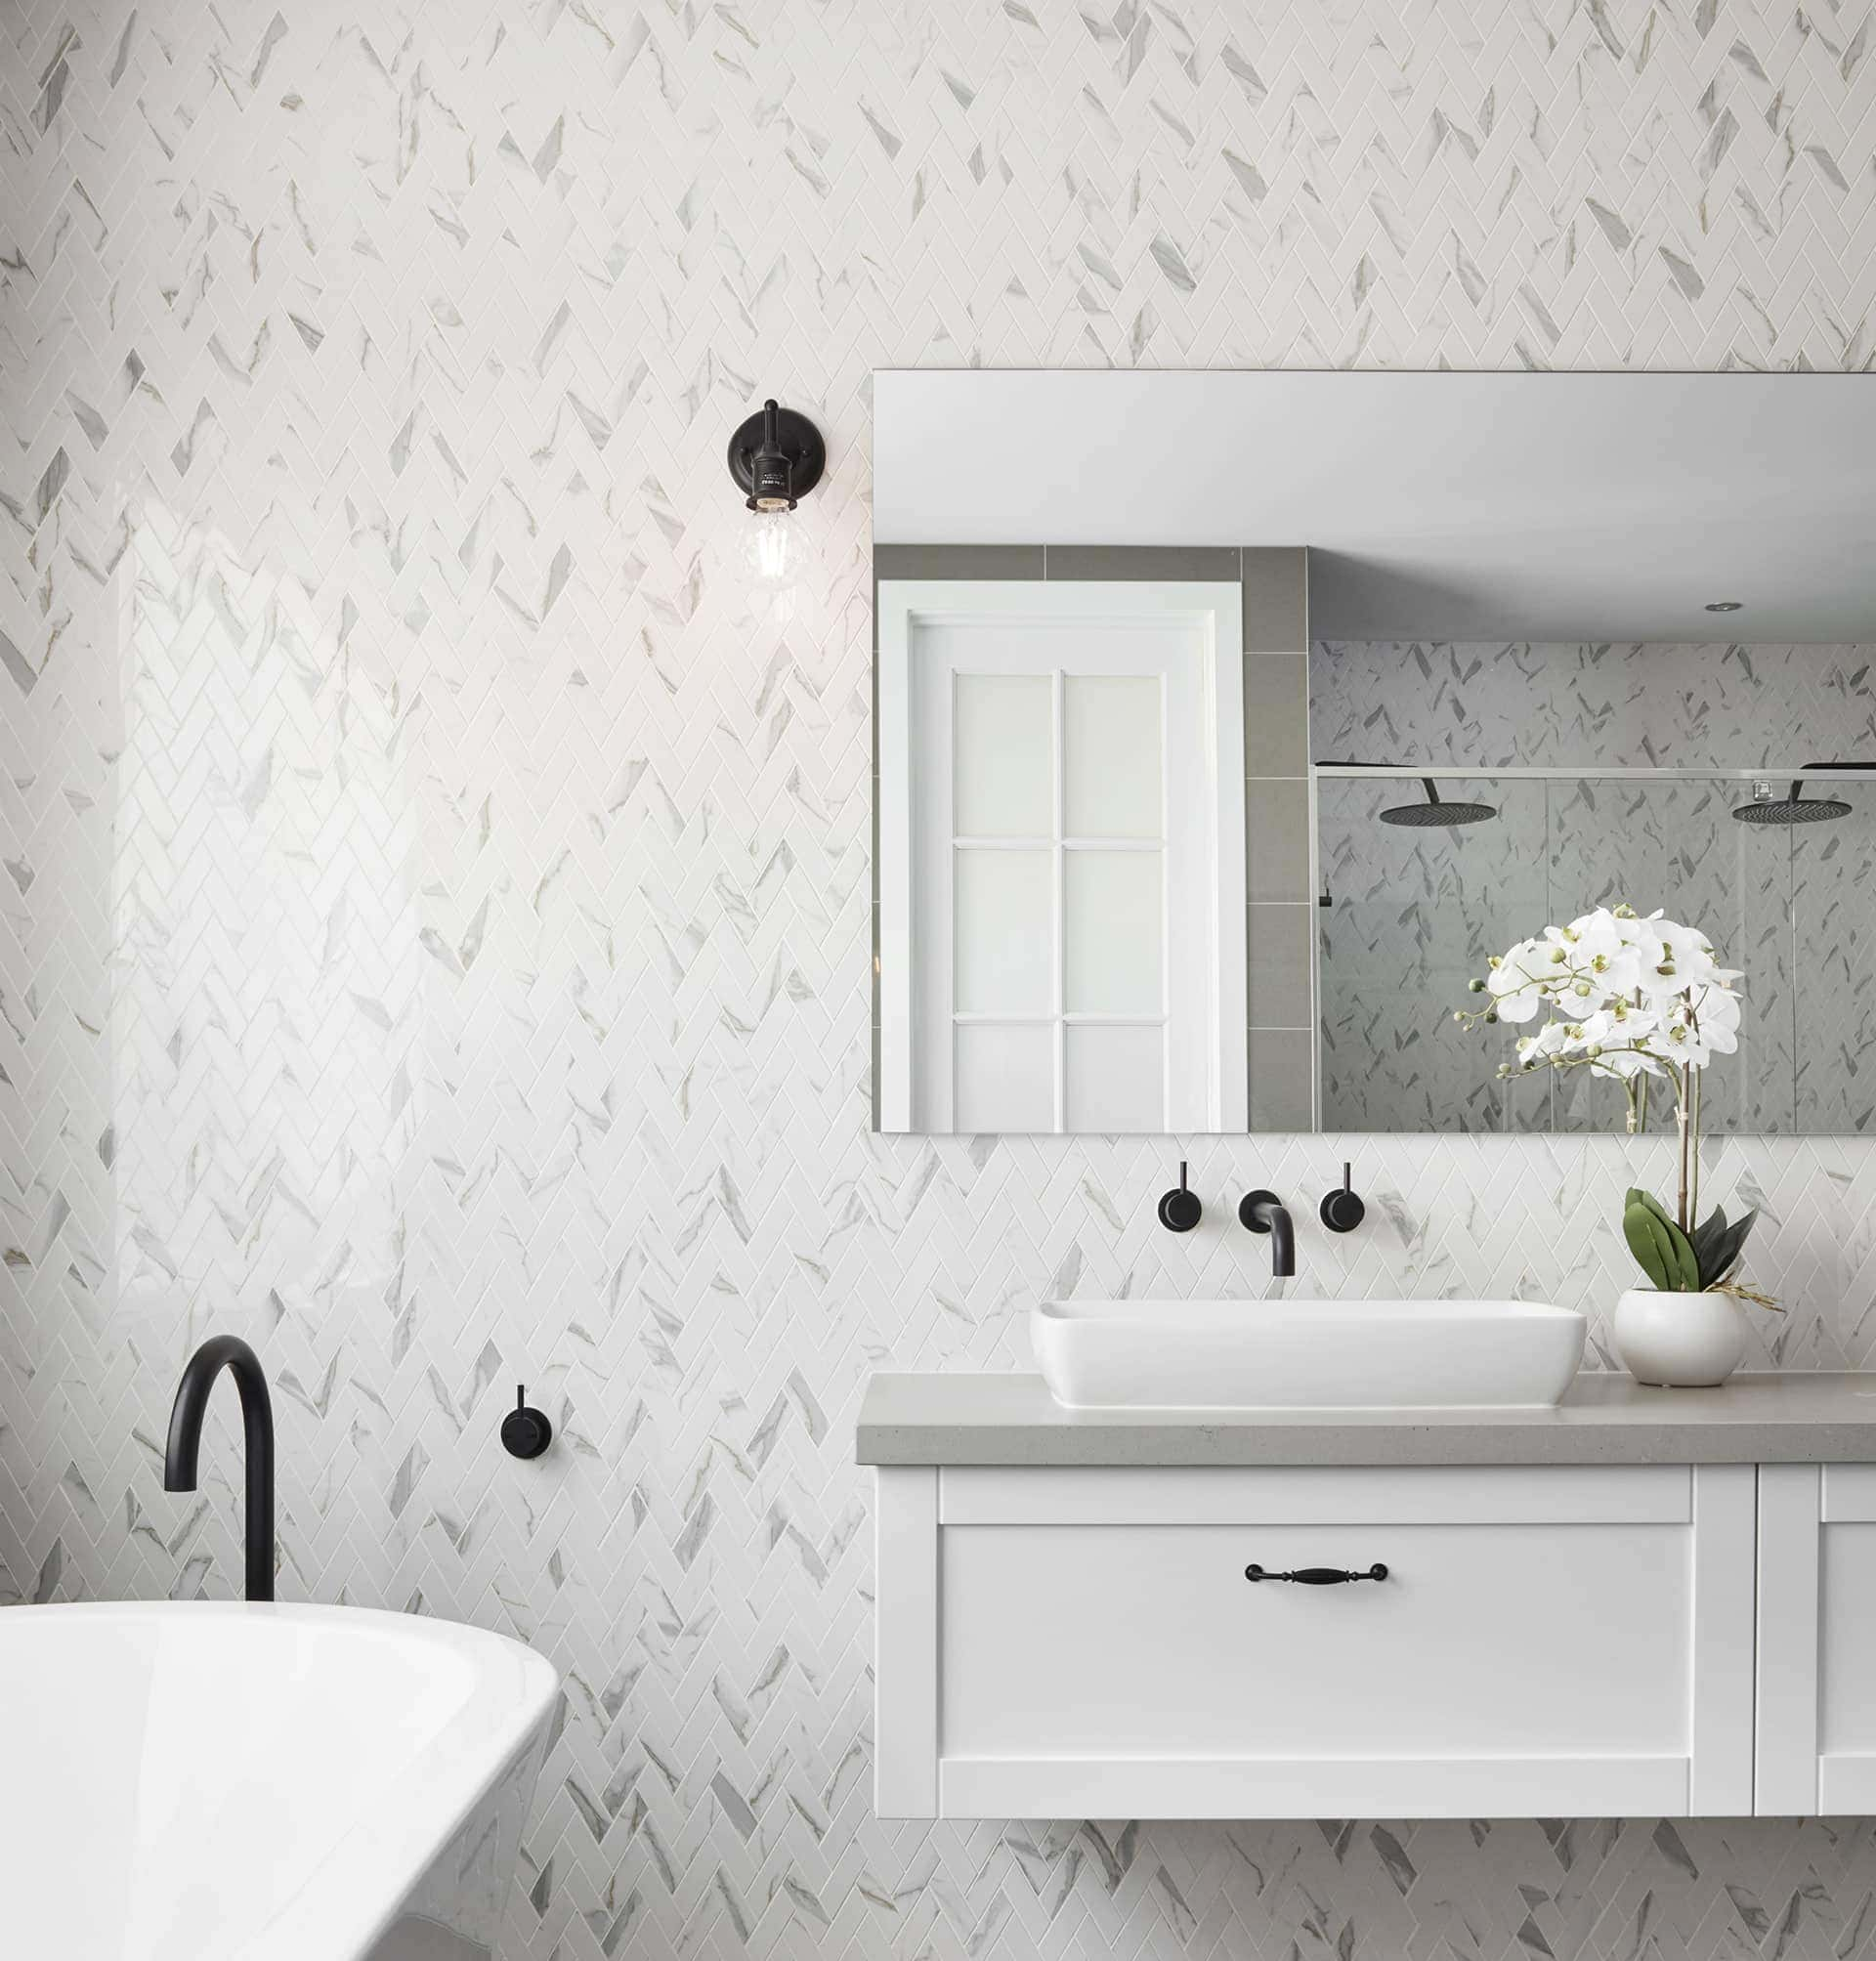 hamptons style bathroom with herringbone marble wall tiles and floating vanity with fake orchid